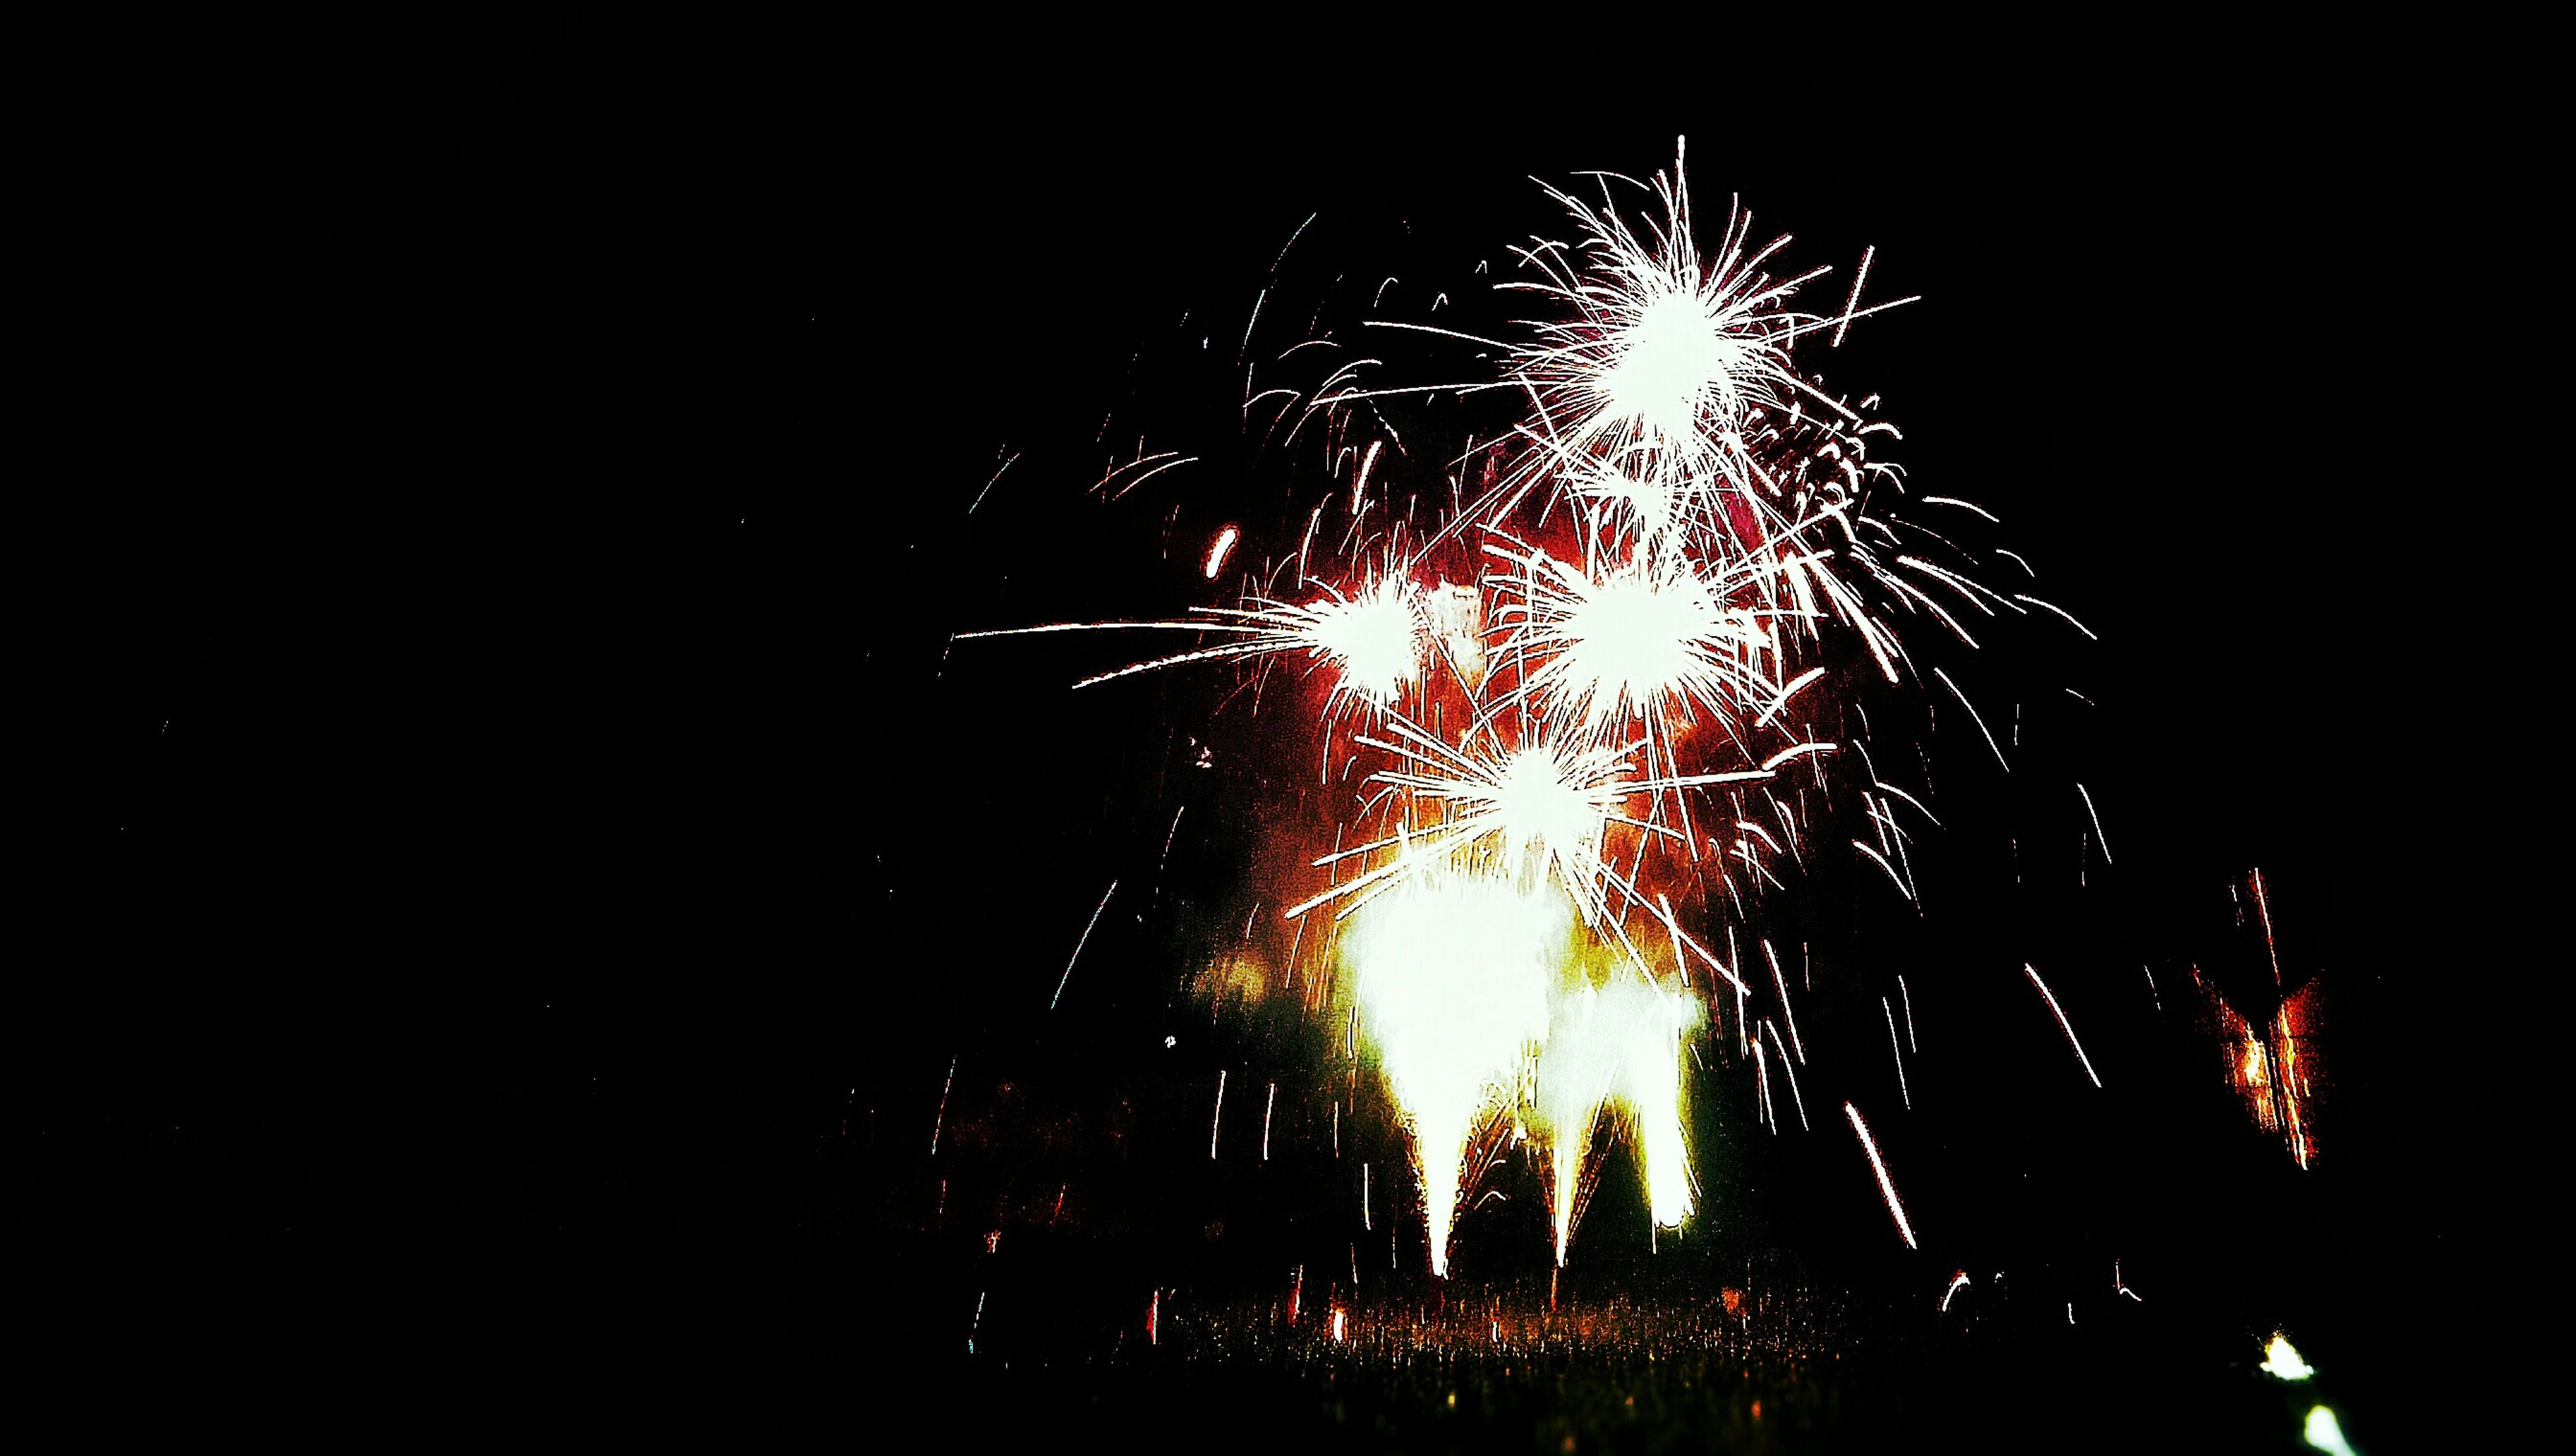 night, firework display, long exposure, exploding, illuminated, firework - man made object, motion, sparks, celebration, glowing, fire - natural phenomenon, firework, arts culture and entertainment, blurred motion, event, entertainment, burning, low angle view, sky, sparkler